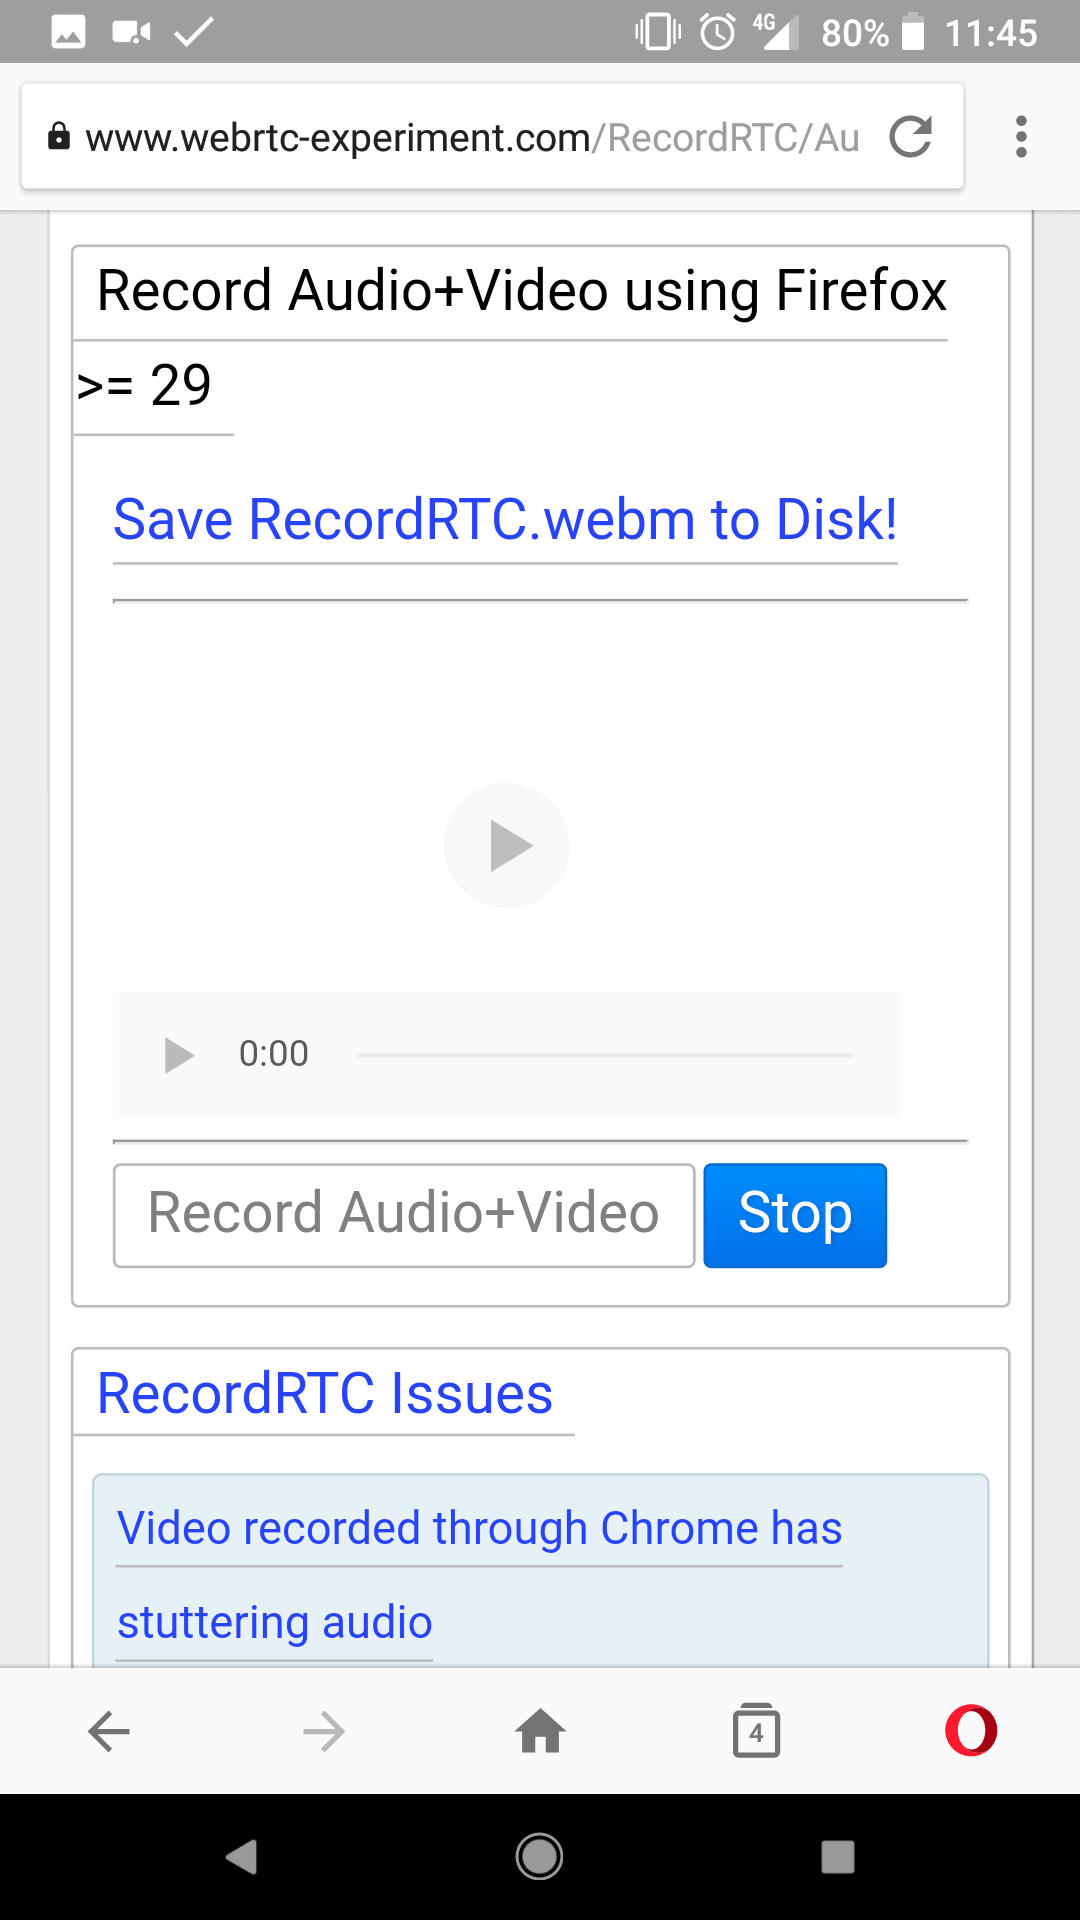 Set video src from a Blob · Issue #49 · SamsungInternet/support · GitHub